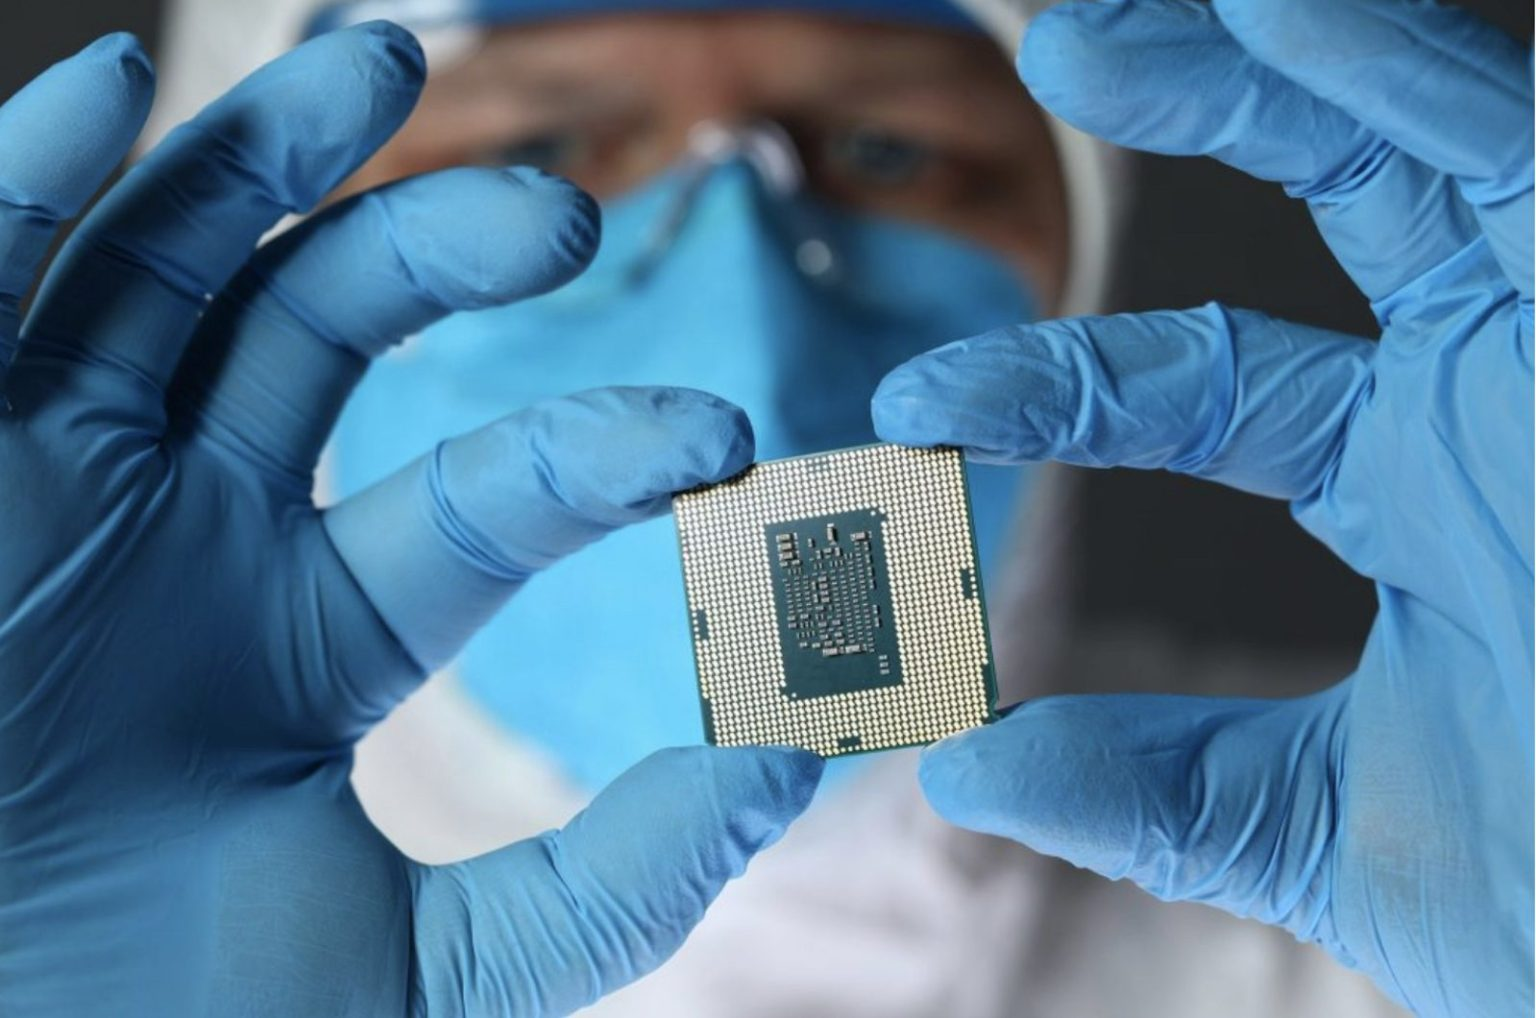 India's billion-dollar bait to global chip makers, who might take a pass